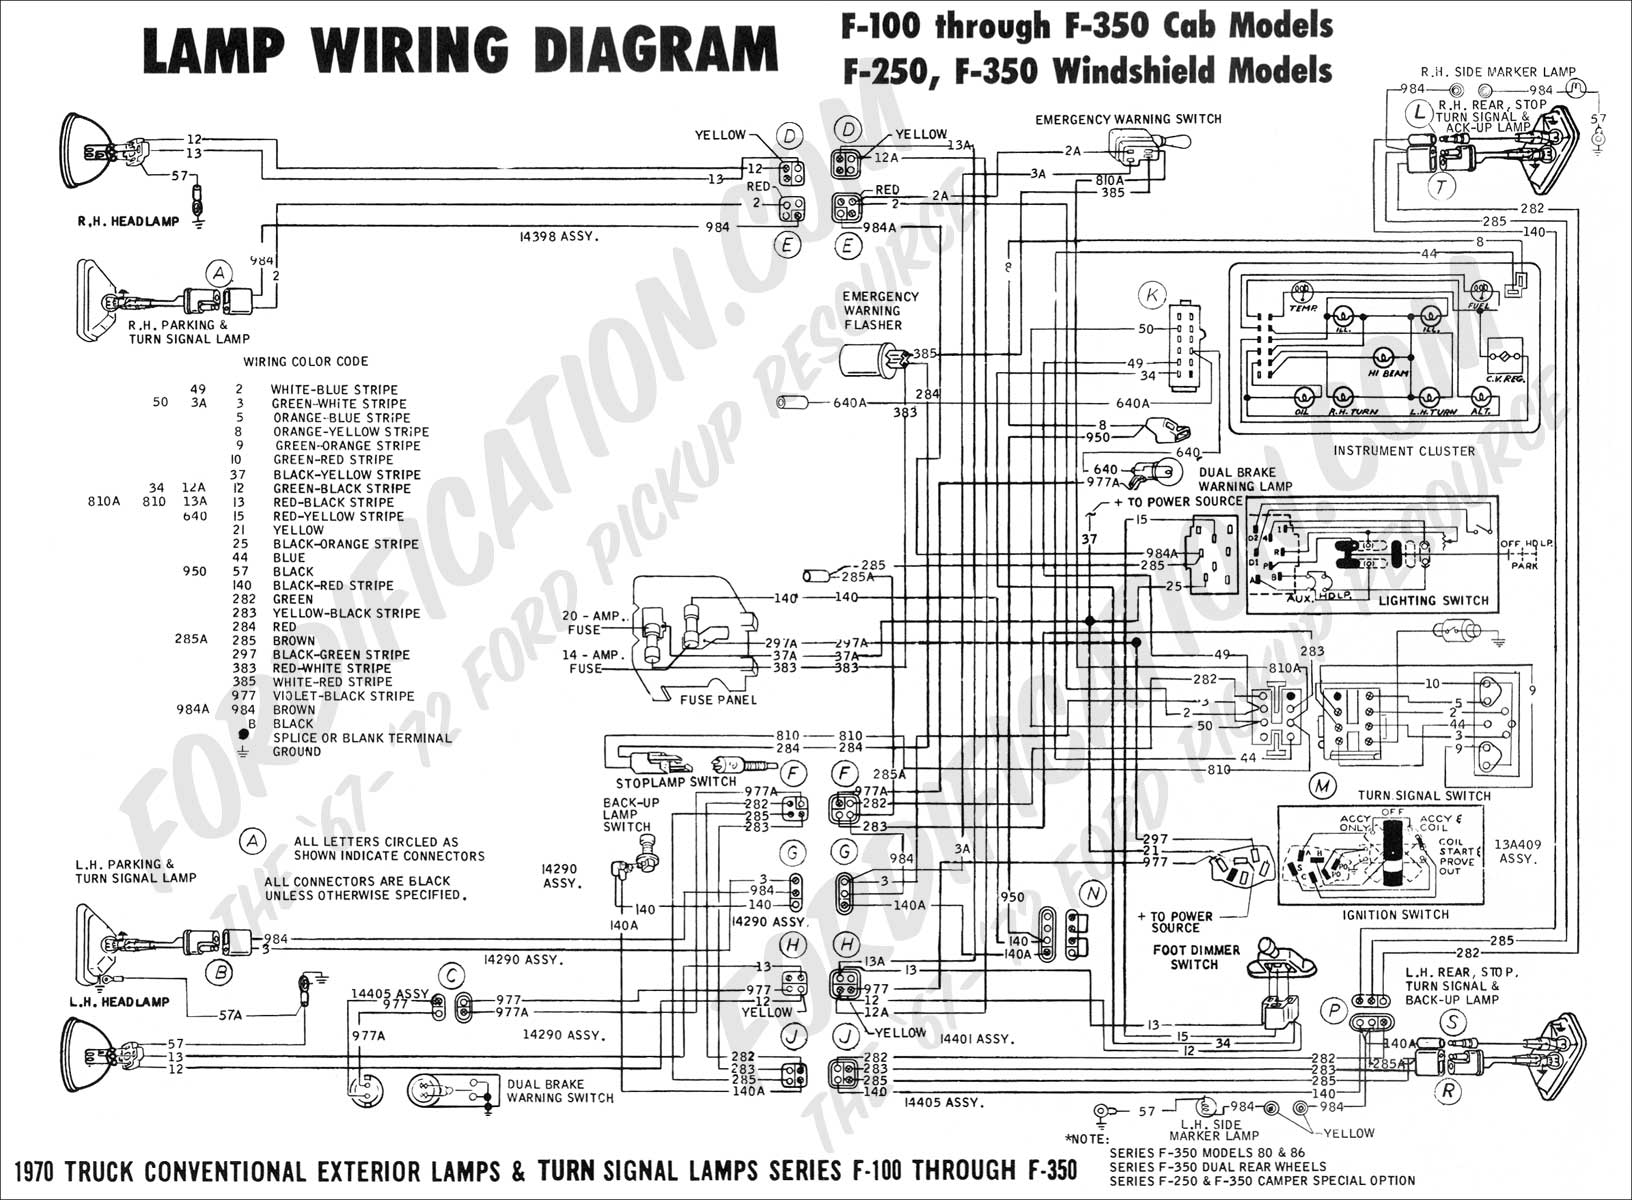 wiring diagram_70ext lights01 ford f250 wiring diagram online f250 trailer wiring diagram wiring diagram for 2002 f250 starter at webbmarketing.co